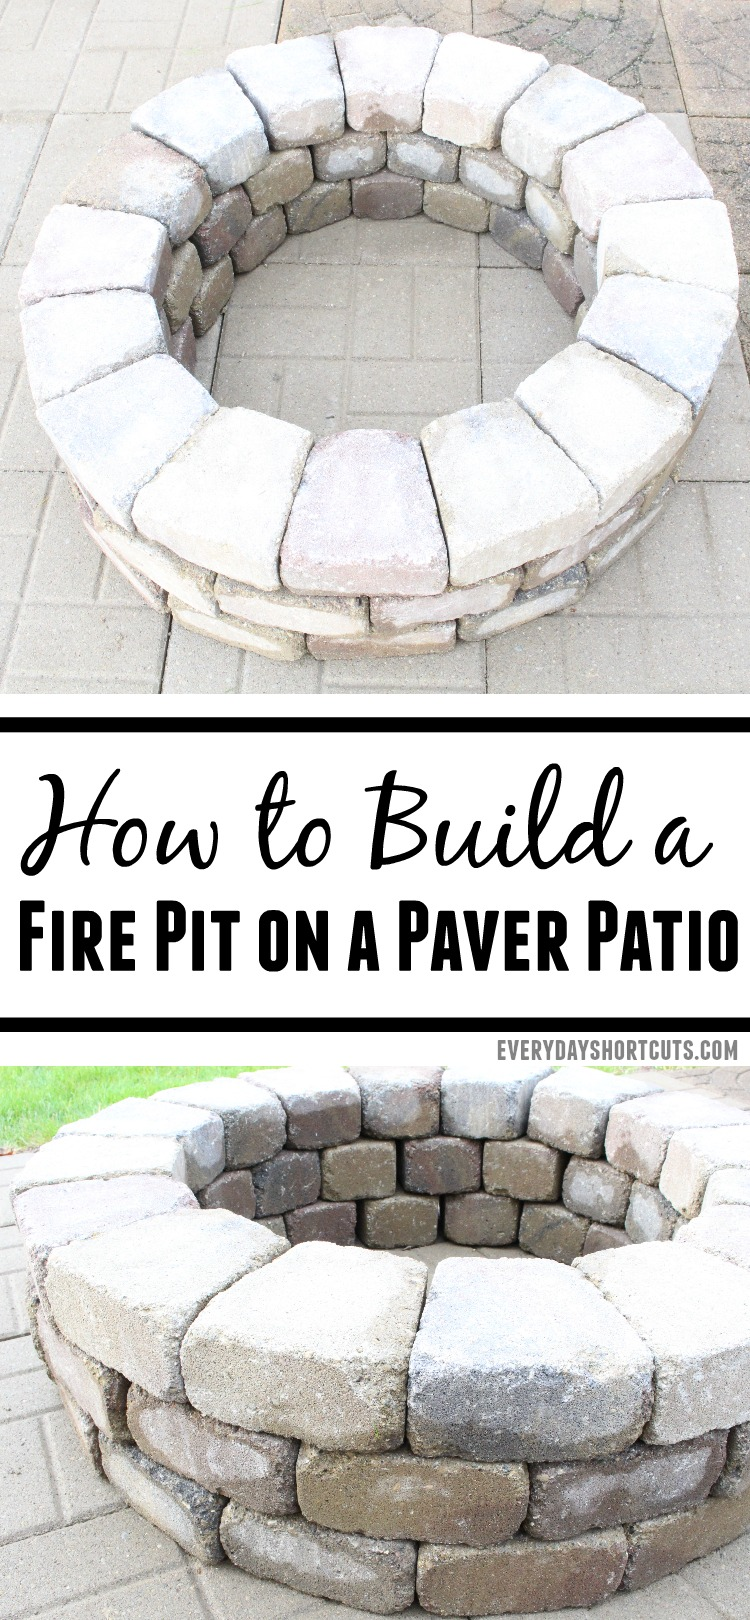 How to Build a Fire Pit On a Paver Patio